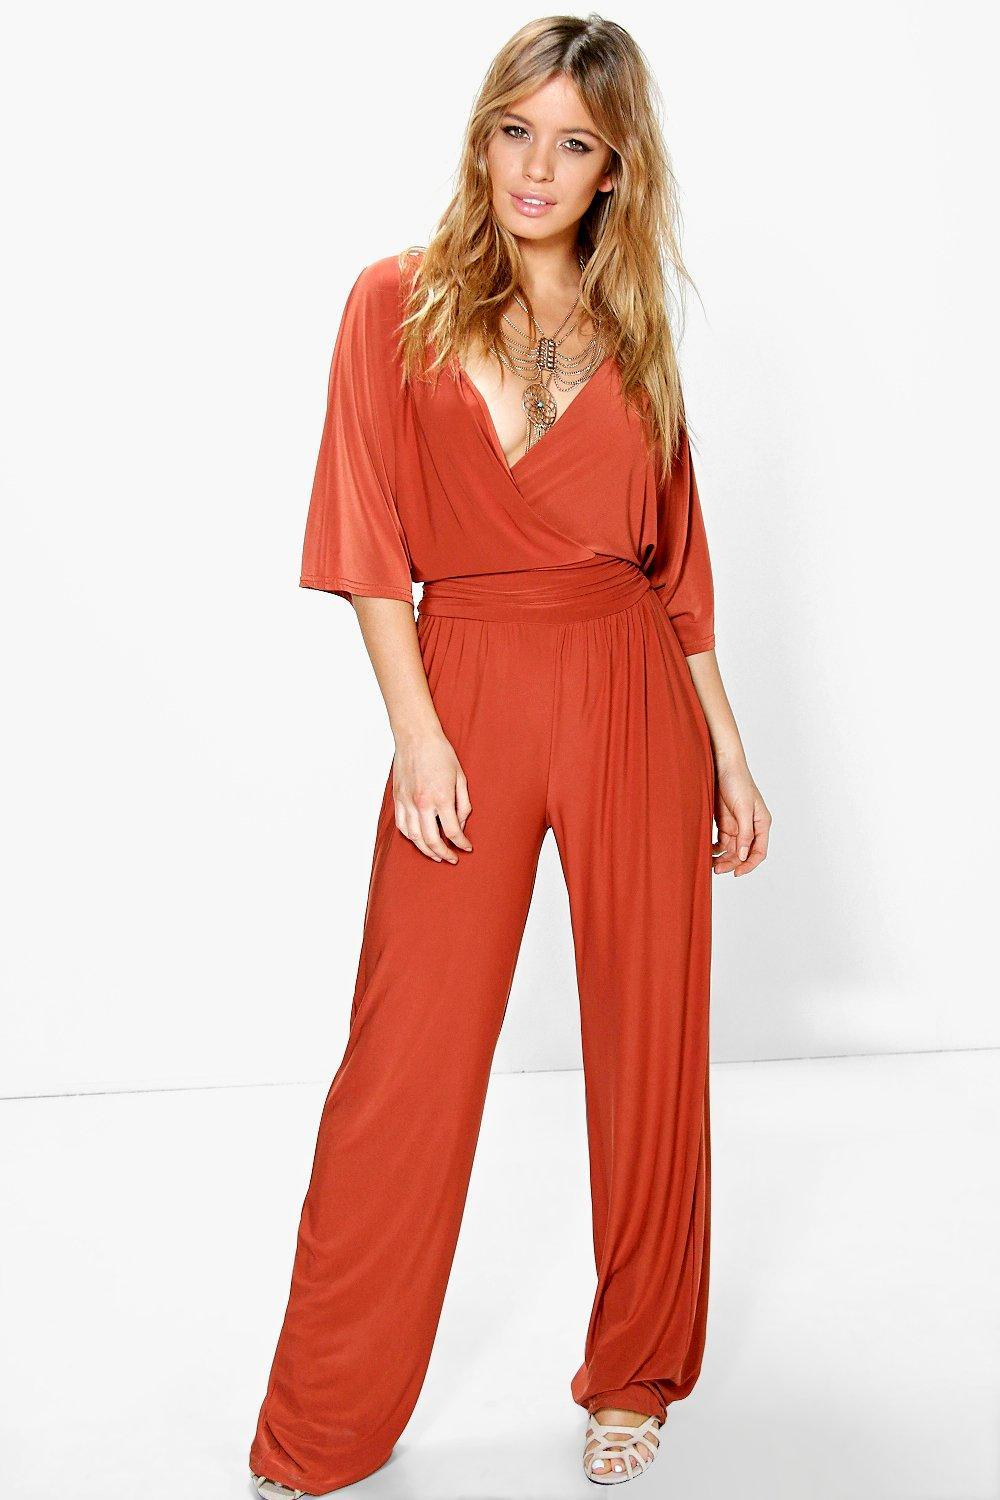 Elle Wrap Front Wide Leg Jumpsuit Mocha - length: standard; neckline: low v-neck; pattern: plain; predominant colour: bright orange; occasions: evening; fit: body skimming; fibres: polyester/polyamide - stretch; sleeve length: half sleeve; sleeve style: standard; style: jumpsuit; pattern type: fabric; texture group: jersey - stretchy/drapey; season: s/s 2016; wardrobe: event